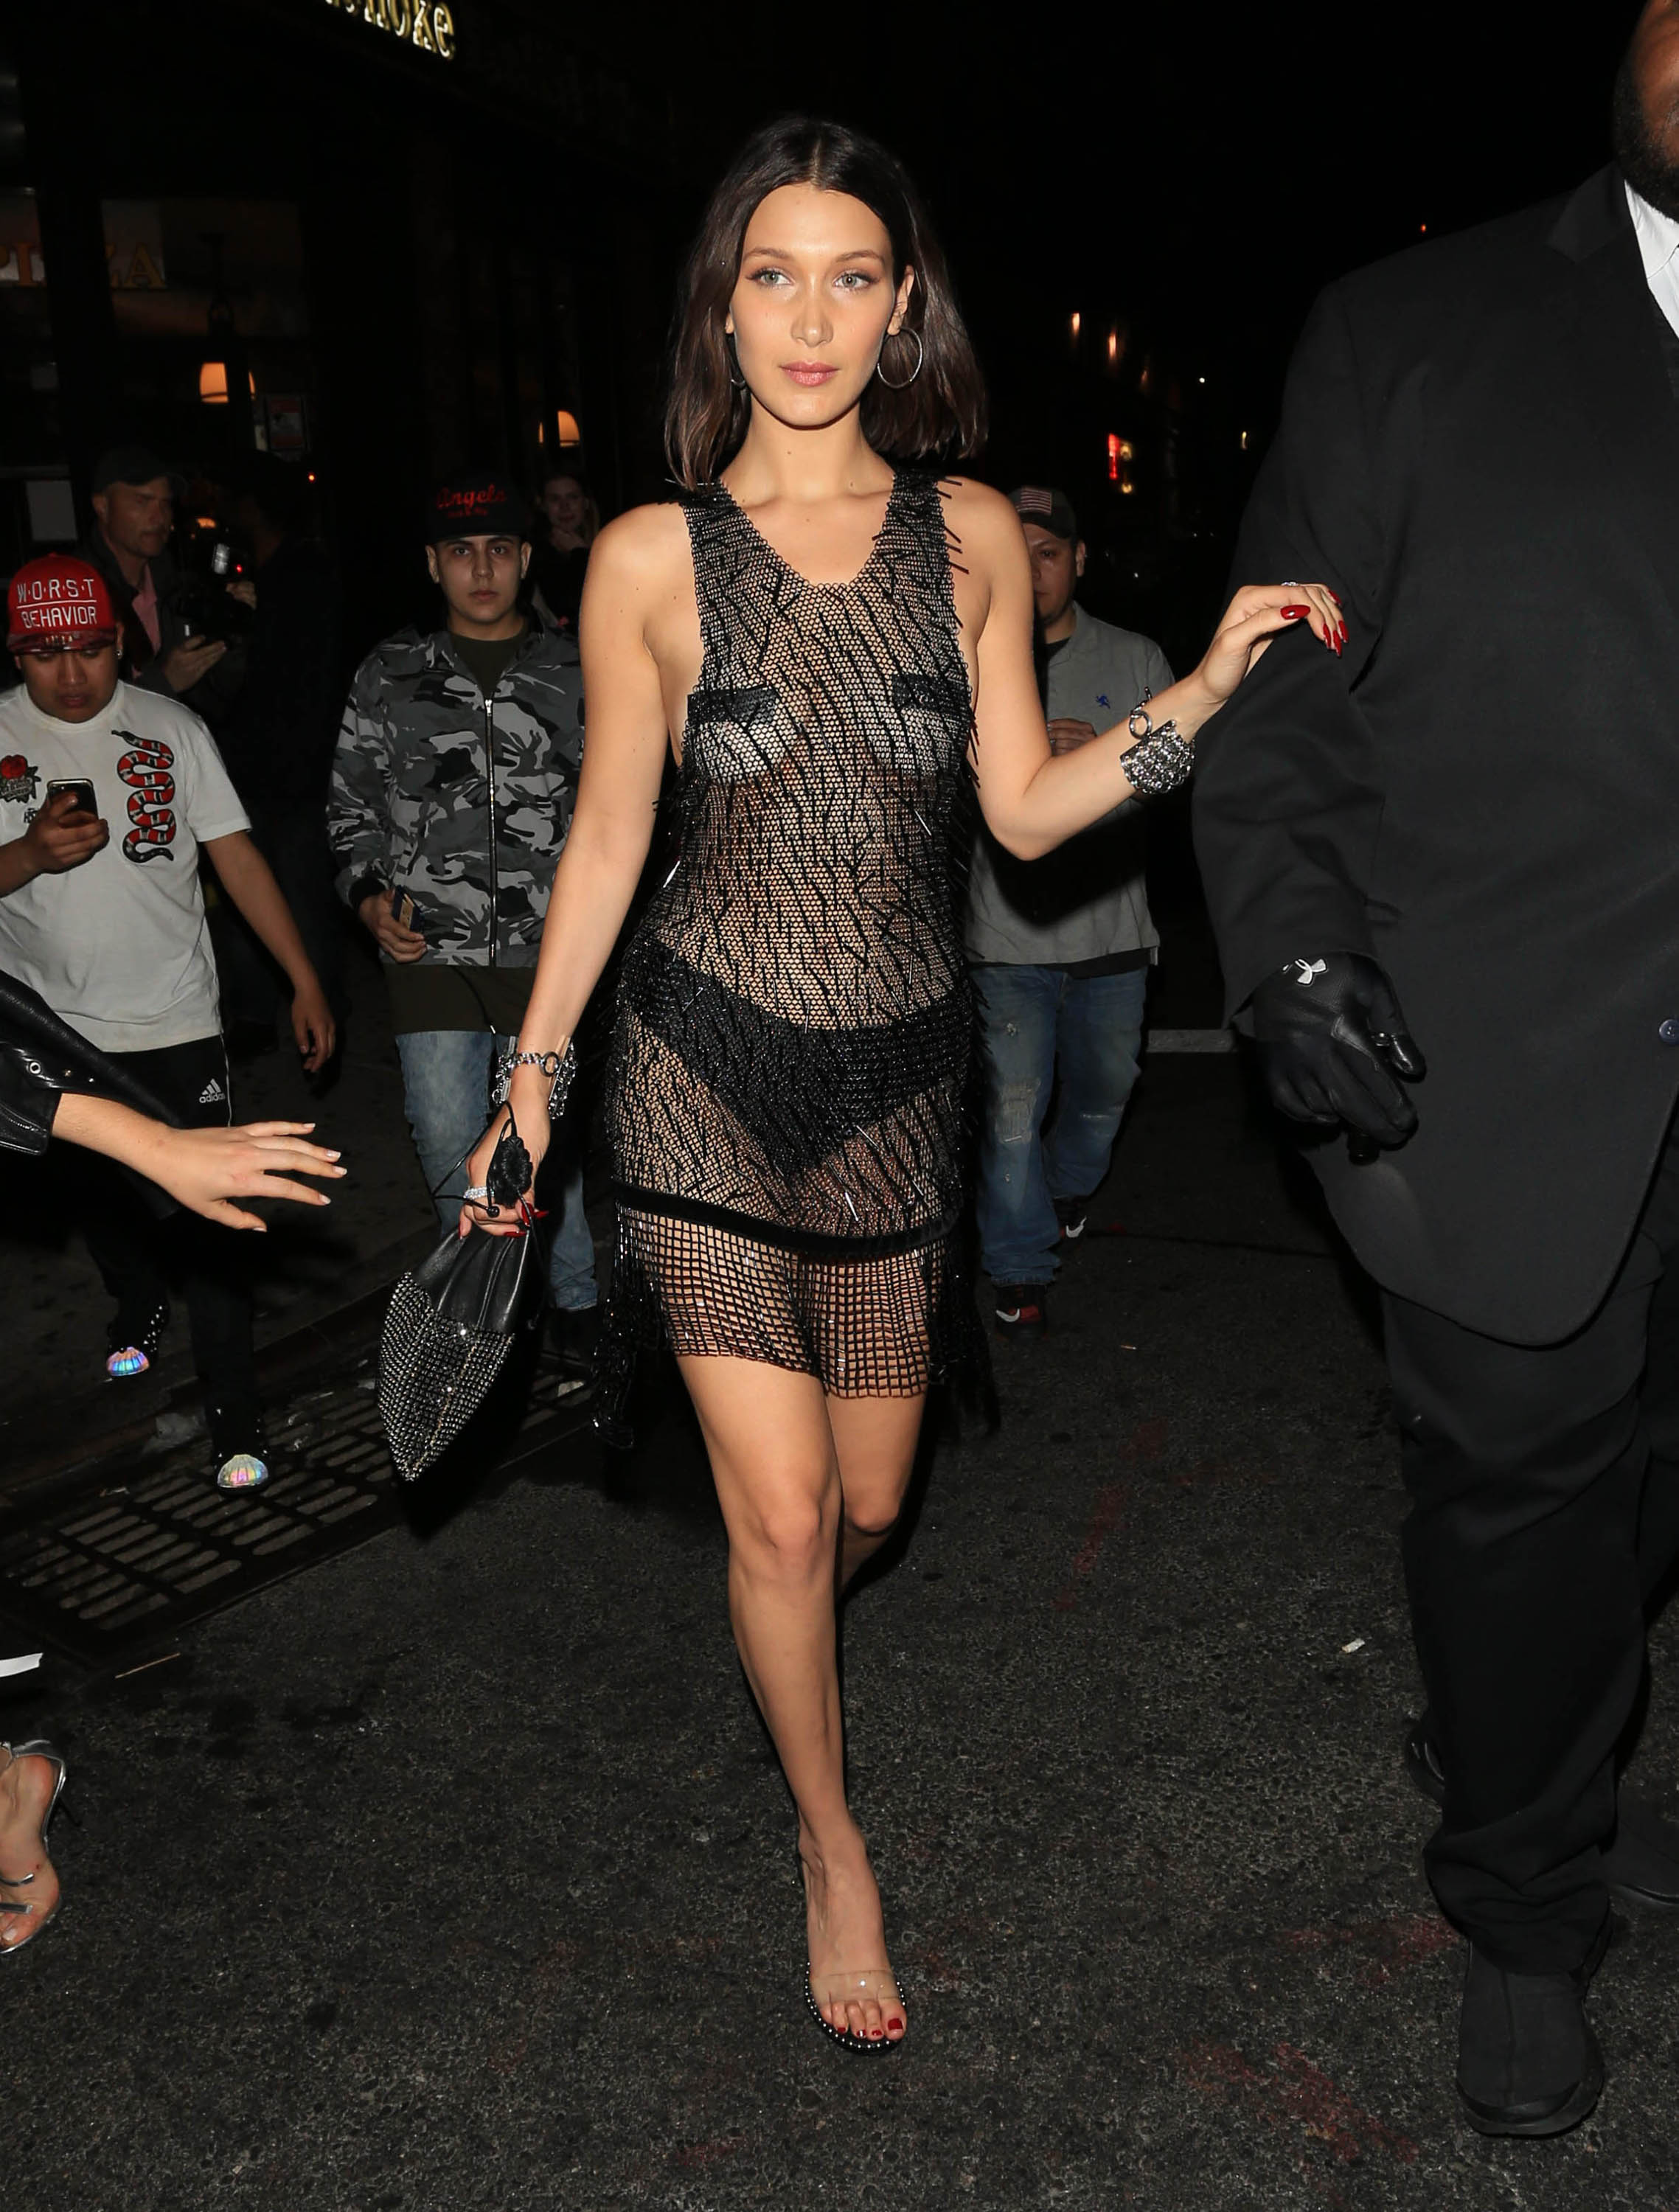 """<p>Bella Hadid was definitely in the mood to 'bare all' at the<em><a href=""""http://style.nine.com.au/2017/05/02/08/15/met-gala-red-carpet-2017"""" target=""""_blank"""" draggable=""""false"""">2017 Met Gala Rei Kawakubo/Comme des Garcons: Art Of The In-Between.</a></em></p> <p>After donning a nearly nude catsuit on the red carpet by  Alexander Wang, the supermodel went for an even more daring look for the post-met celebrations in another sheer look from the designer.</p> <p> The 20-year-old arrived at 'Queen of the night' Rihanna's after-party at New York hotspot 1OAK, in a  beaded chain-mail dress that left little to the imagination.</p> <p>But Bella wasn't the only A-lister who made a splash with their post-gala attire, as Katy Perry, Lily Aldridge and Kendall Jenner also kept the designer outfits and shock-factor flowing well into the night.</p> <p>We take a look at the A-list's Met Gala red-carpet looks and their after-party transformations.</p>"""